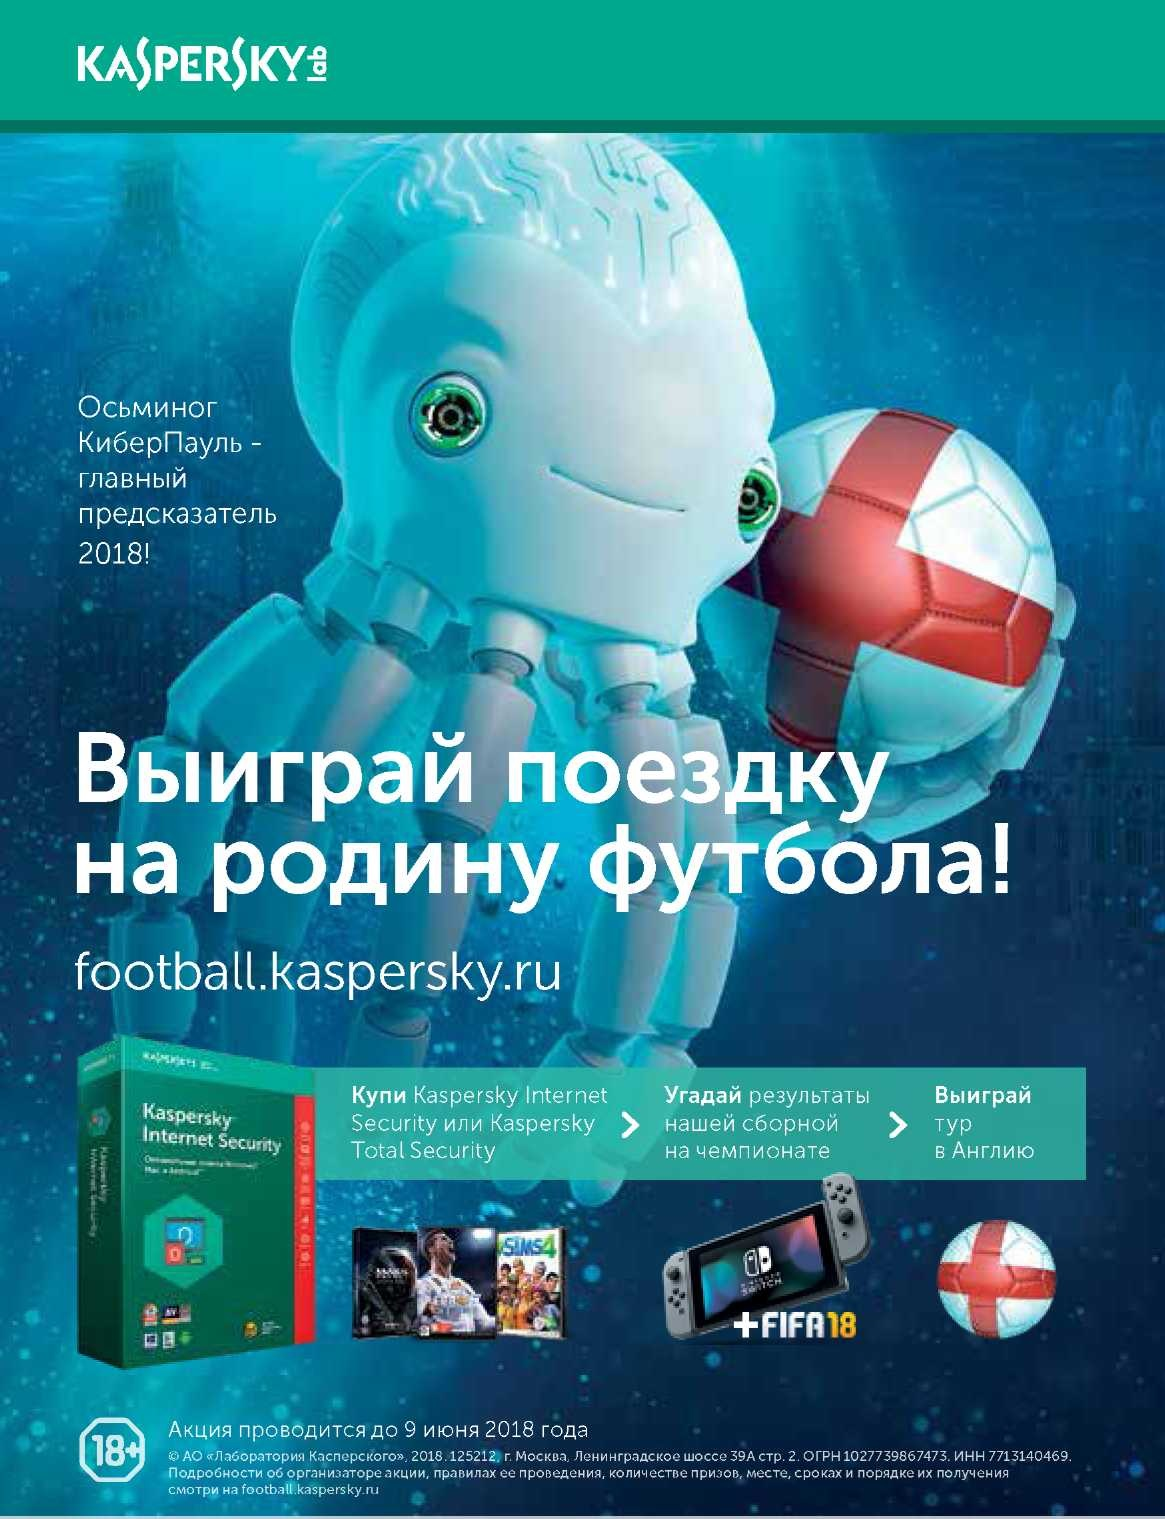 Kaspersky Internet Security 5 devices: EXTENSION